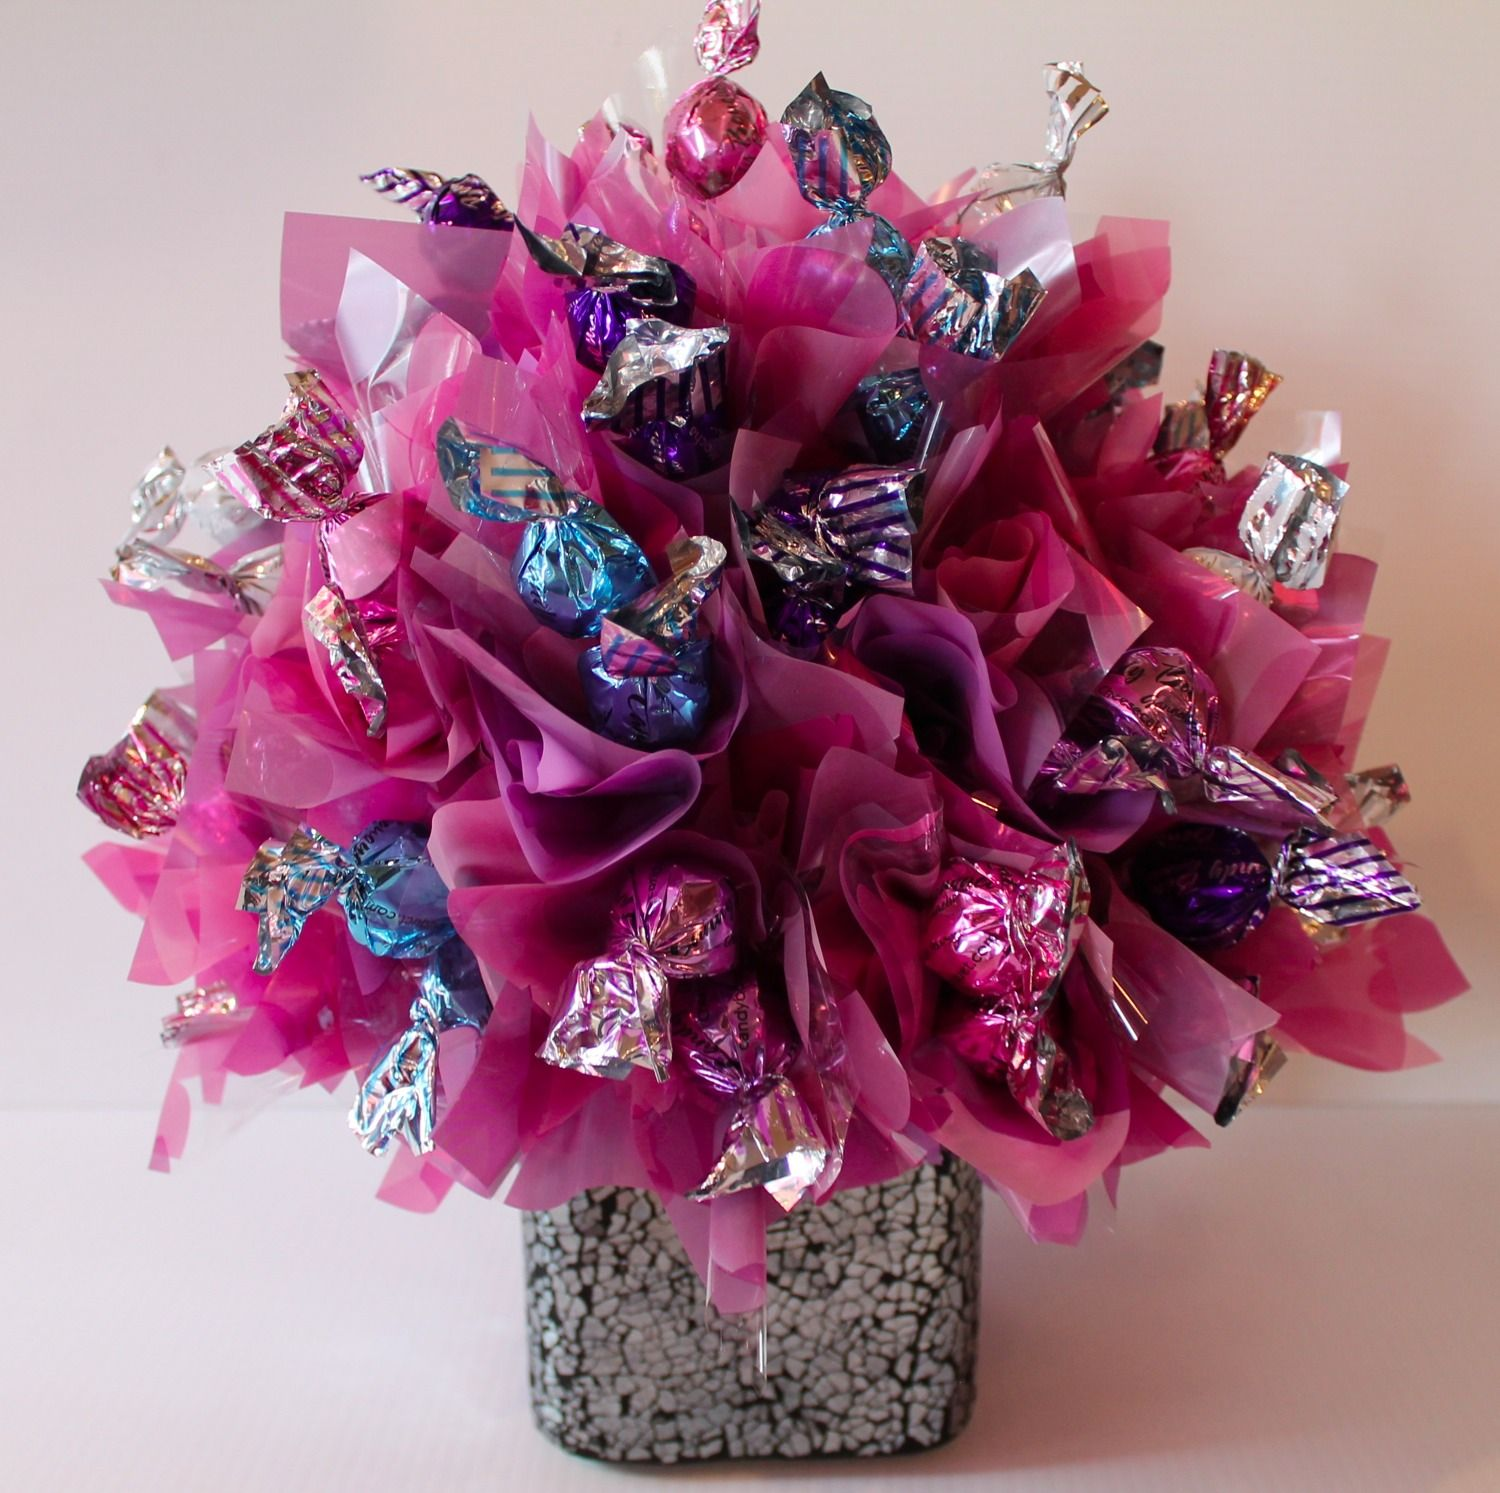 Chocolate bouquet on pinterest candy flowers bouquet of chocolate -  Charlotte Willner Piper Valentine Candy Bouquet We Could Use Tissue Paper Like This To Pink Chocolatechocolate